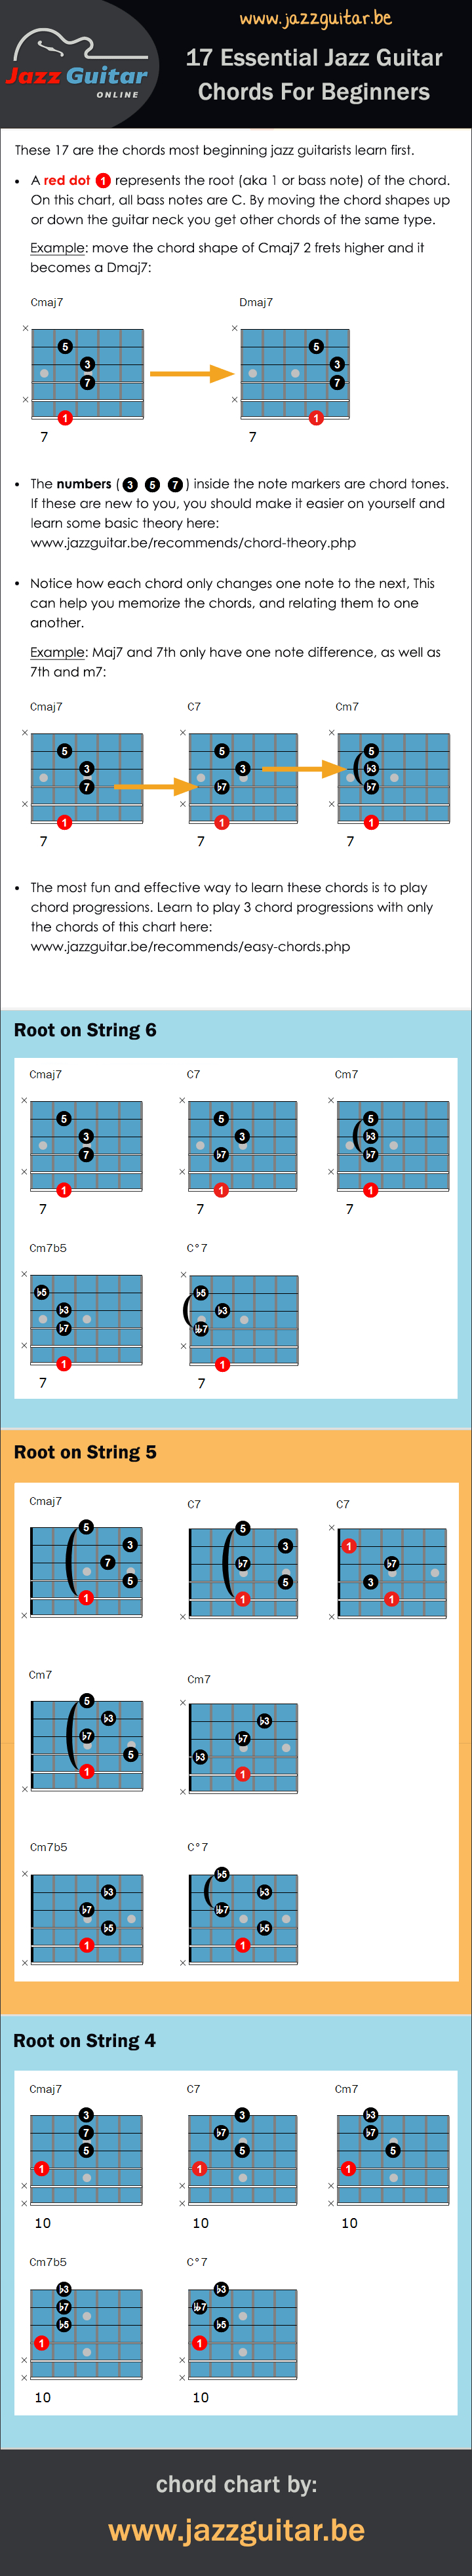 Guitar Chords For Beginners Top 17 Easy Jazz Guitar Chords For Beginners Chord Chart